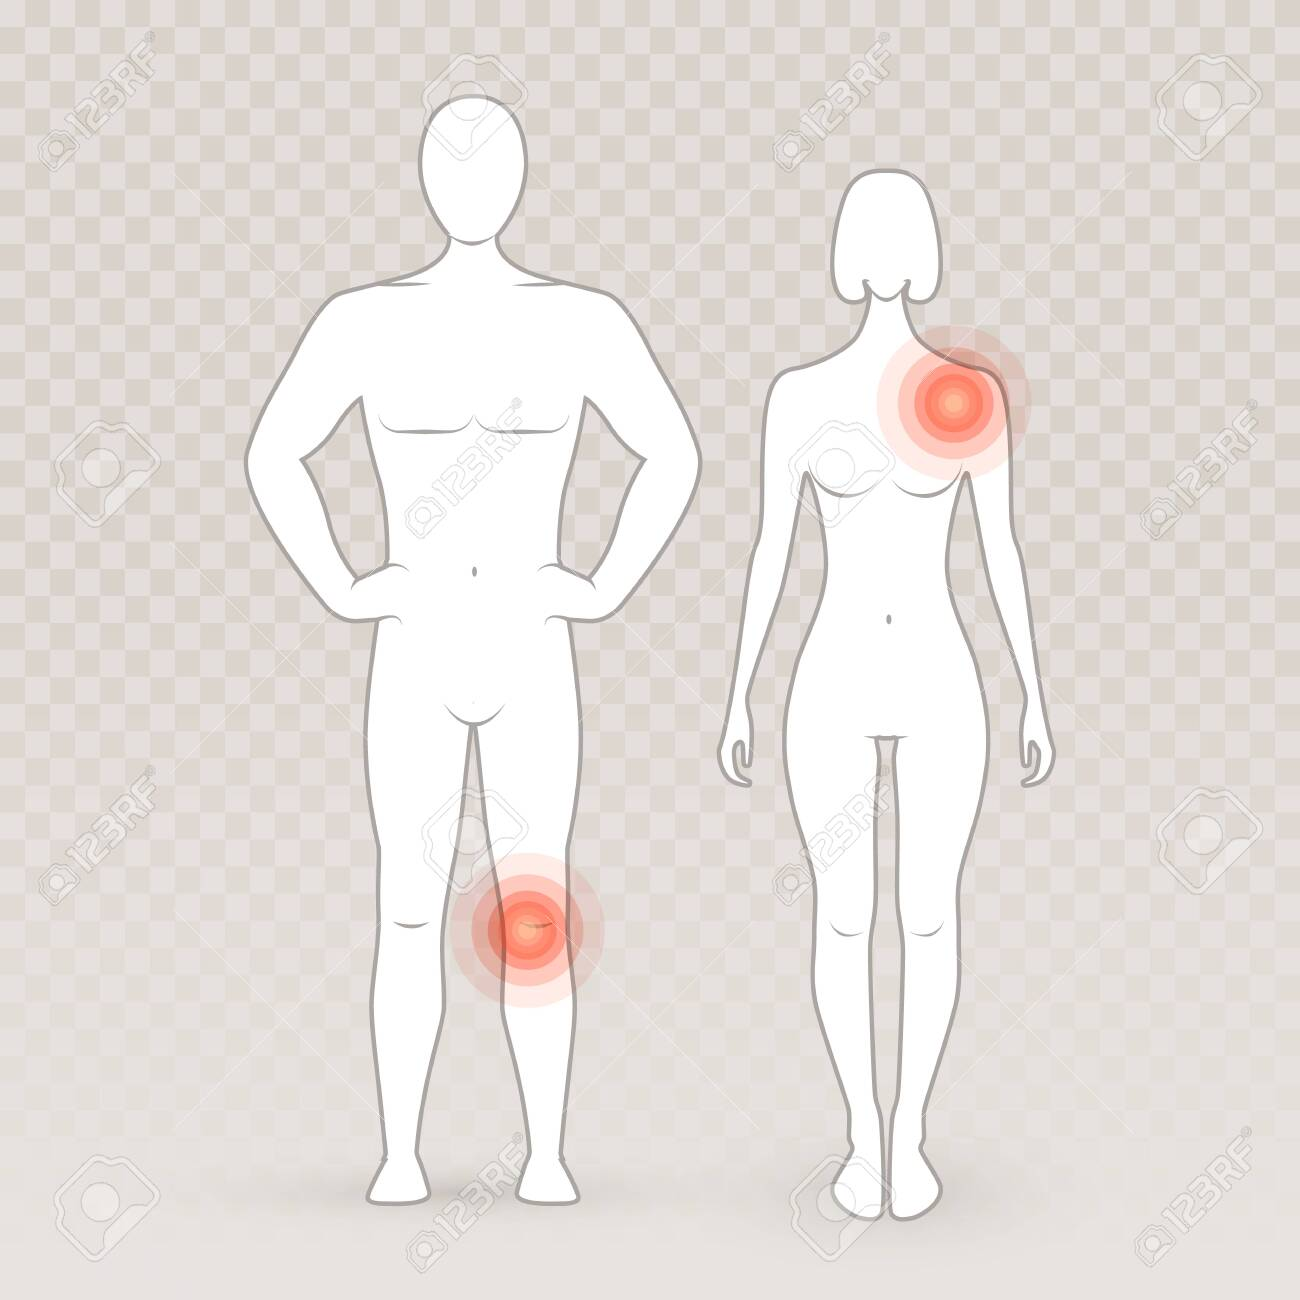 male and female silhouettes with pain circles on the transparent royalty free cliparts vectors and stock illustration image 136523549 male and female silhouettes with pain circles on the transparent